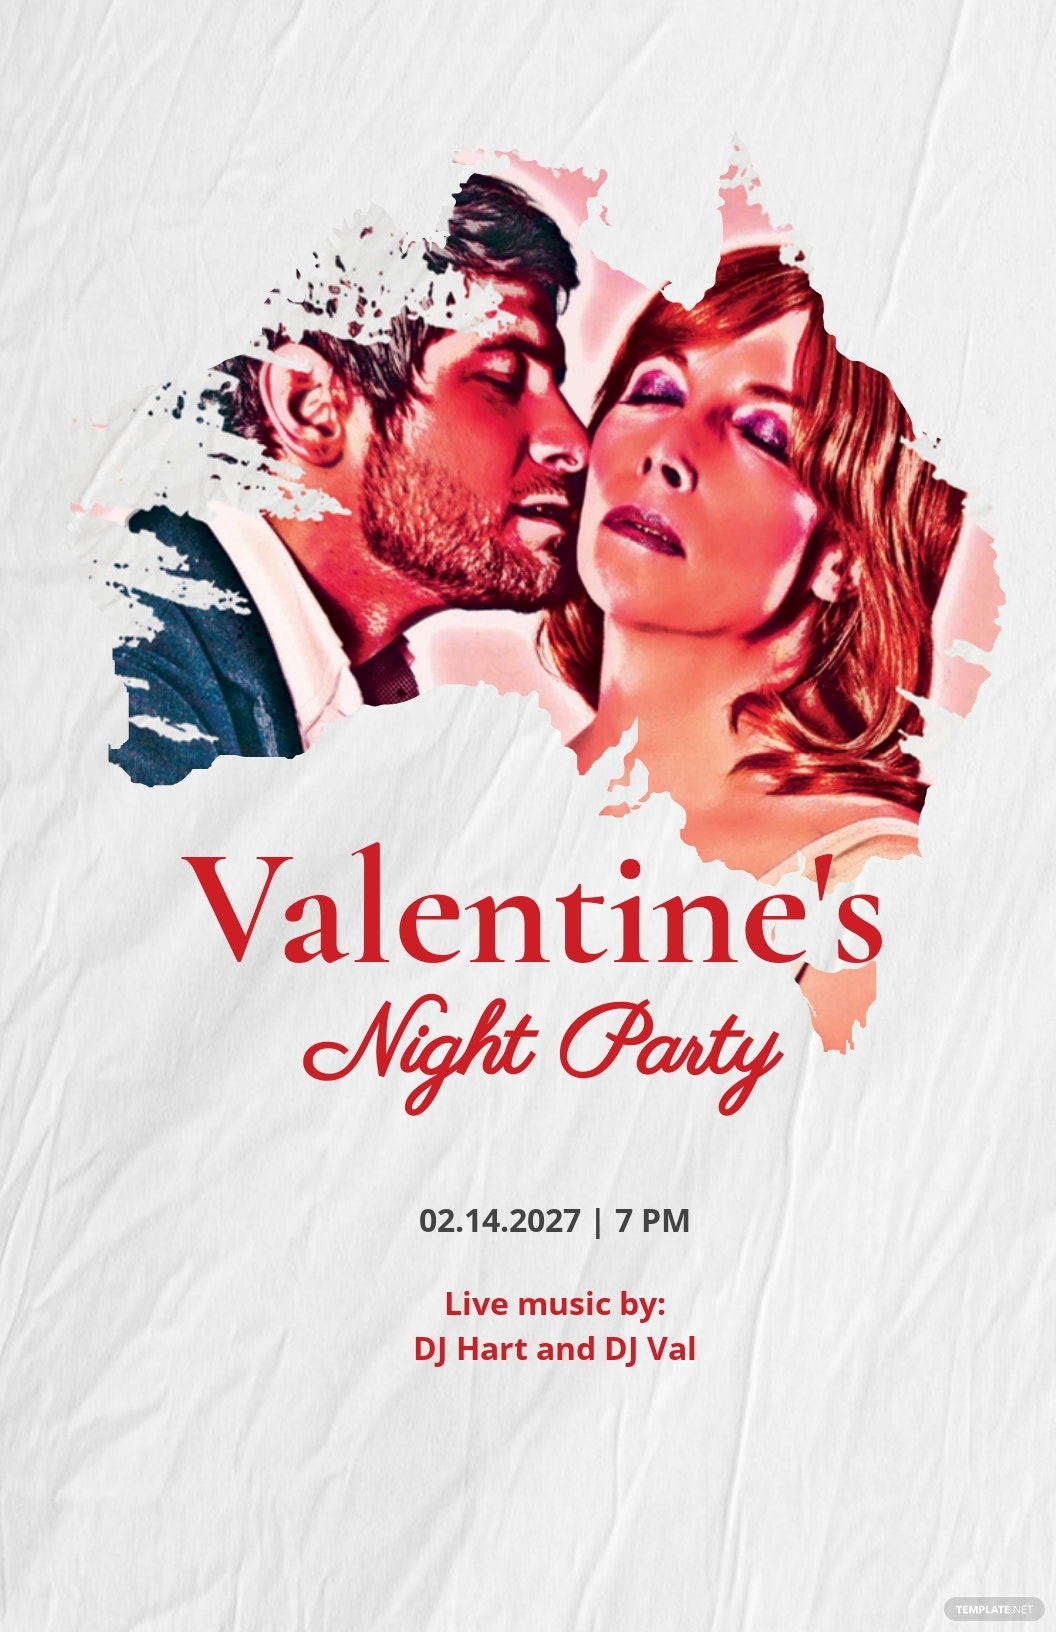 Valentine's Night Party Poster